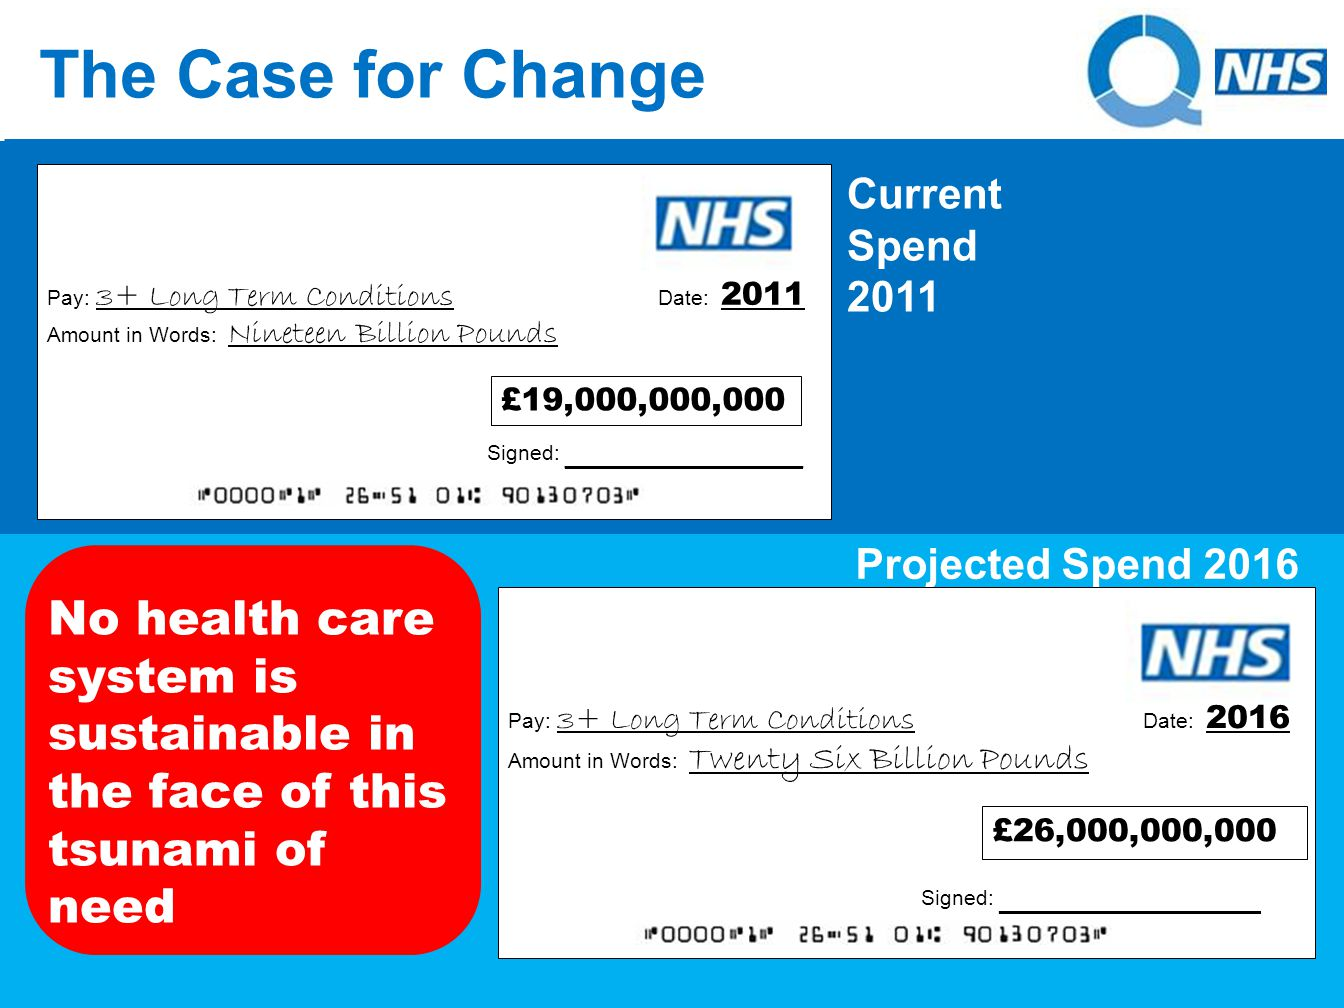 Current Spend 2011 Projected Spend 2016 Pay: 3+ Long Term Conditions Date: 2011 Amount in Words: Nineteen Billion Pounds Signed: __________ £19,000,000,000 Pay: 3+ Long Term Conditions Date: 2016 Amount in Words: Twenty Six Billion Pounds Signed: ___________ £26,000,000,000 The Case for Change No health care system is sustainable in the face of this tsunami of need